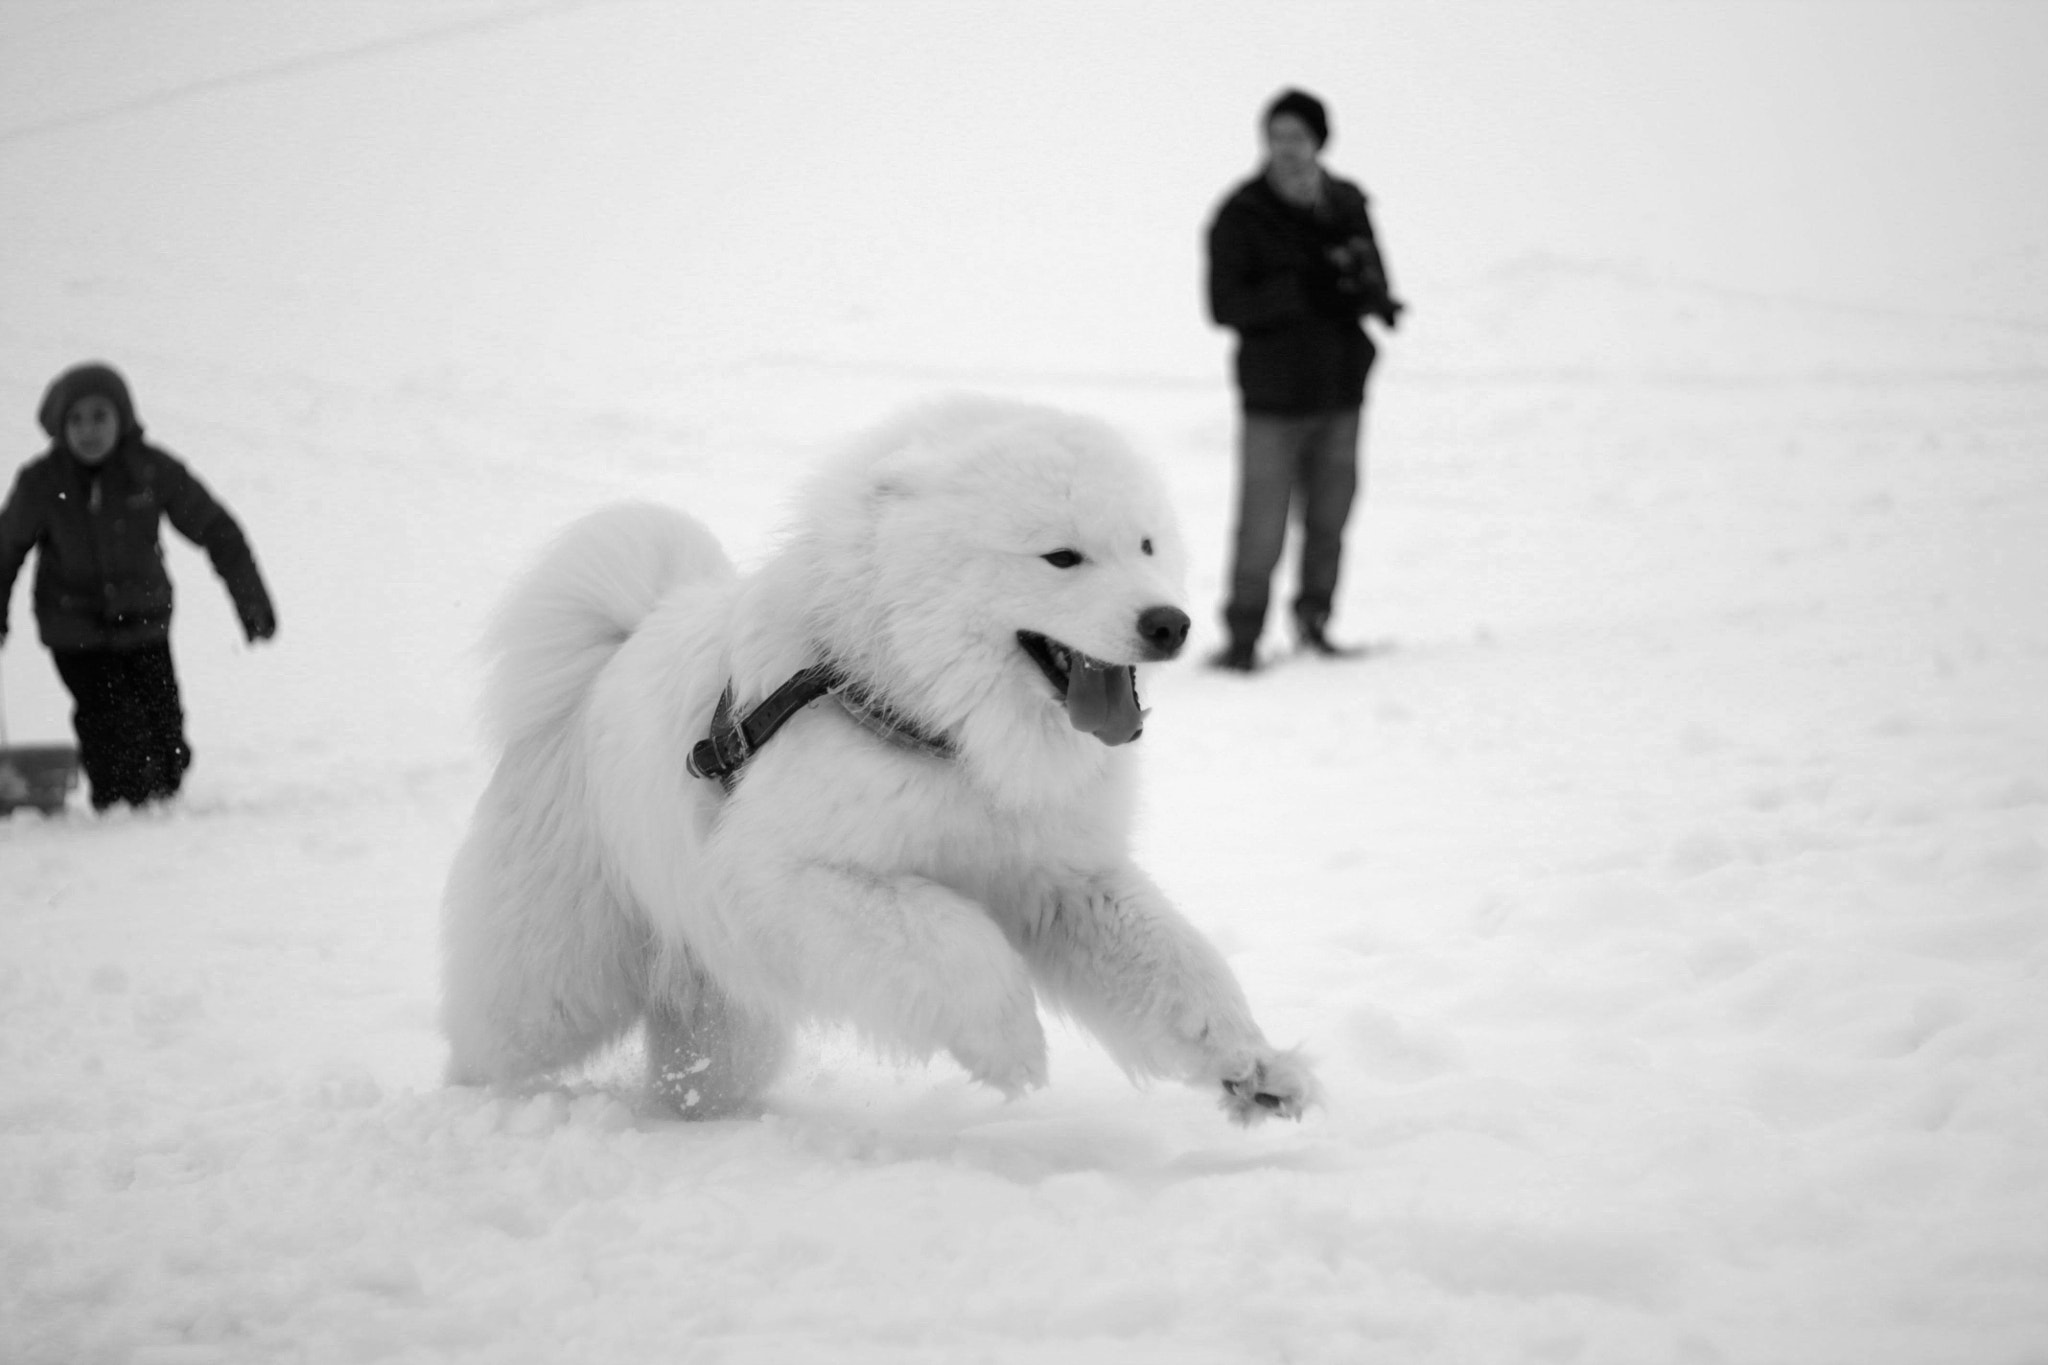 Photograph Samoyed in snow b/w by Carl J.M. on 500px